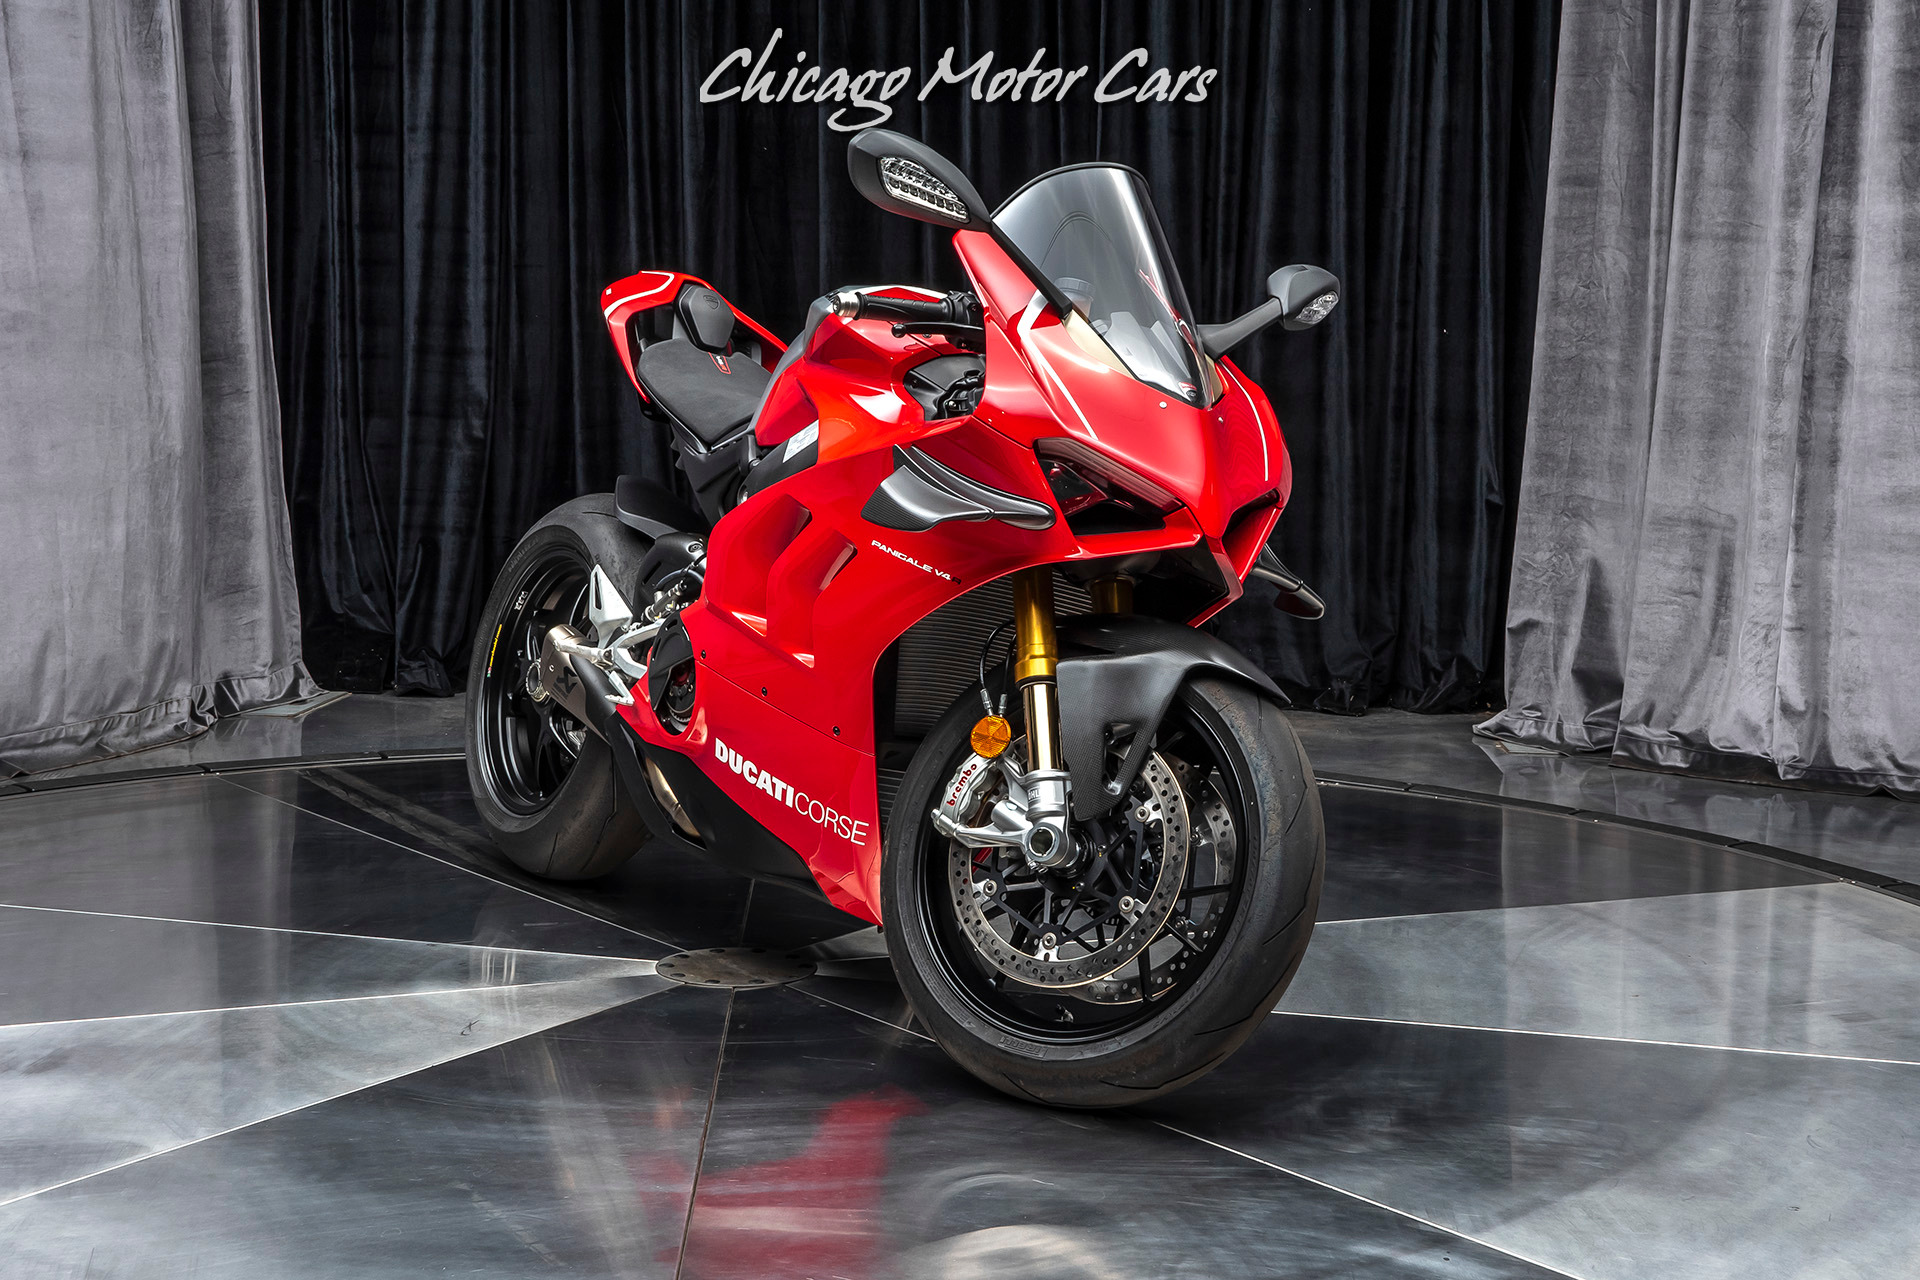 Used 2019 Ducati Panigale V4 R Motorcycle WITH RACING KIT